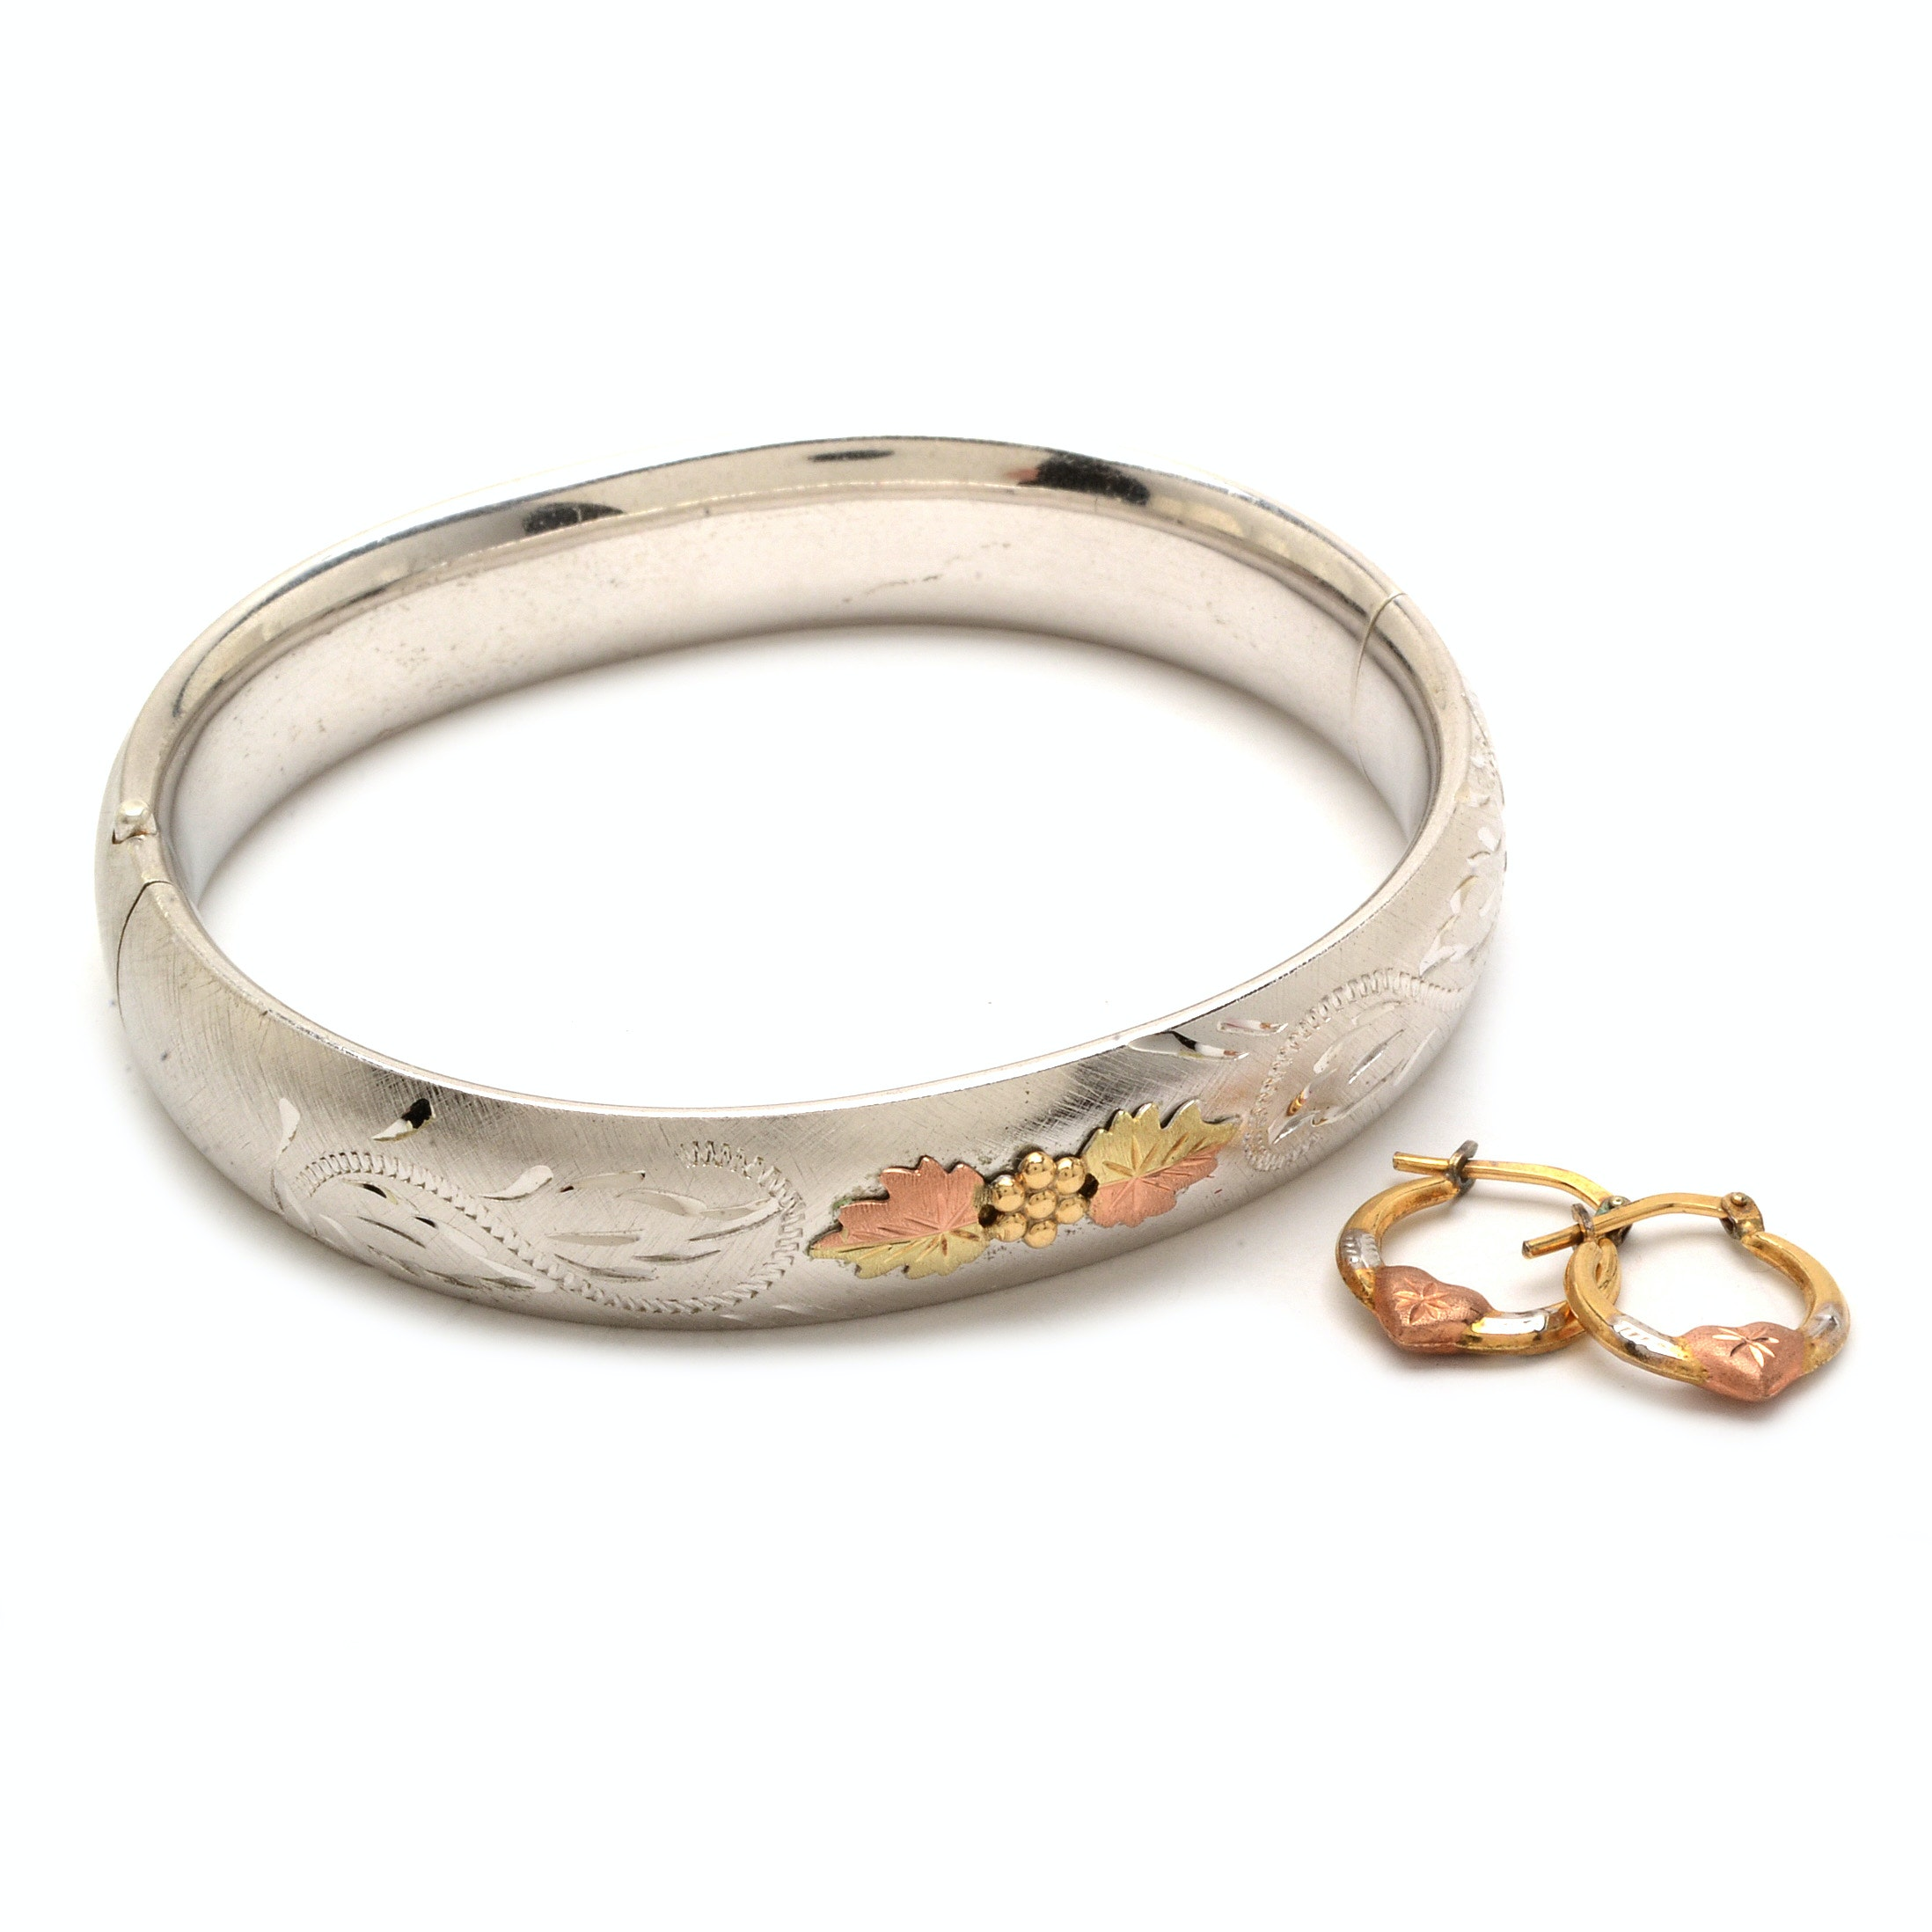 Vintage Sterling Silver Jewelry with Gold Accents from Carl Art and Mom Jordan